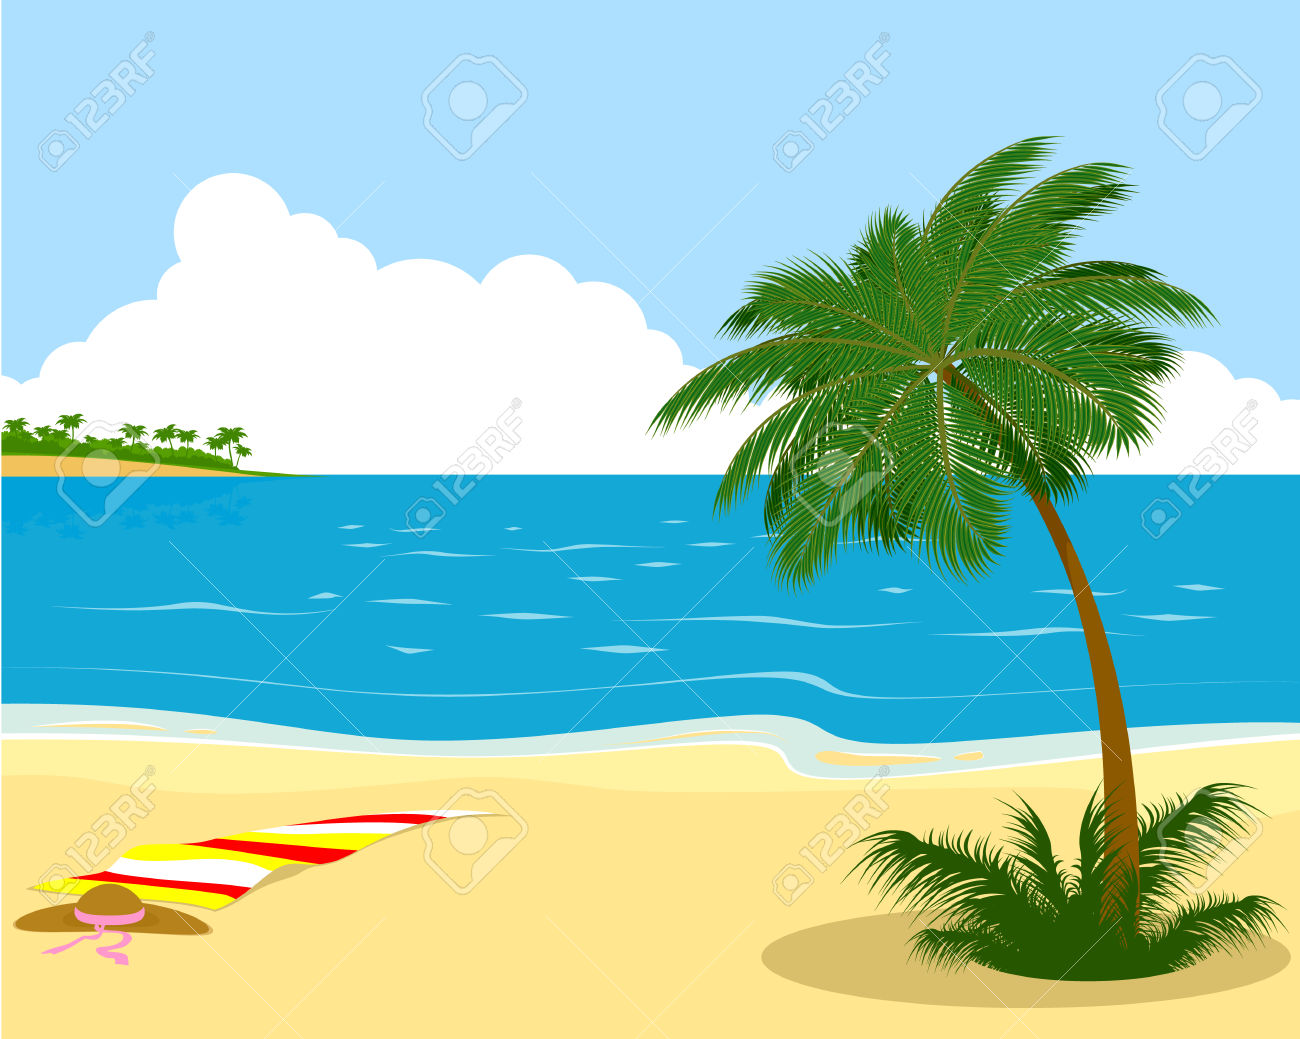 Vector Illustration Of The Sea Shore With Palm Tree Royalty Free.